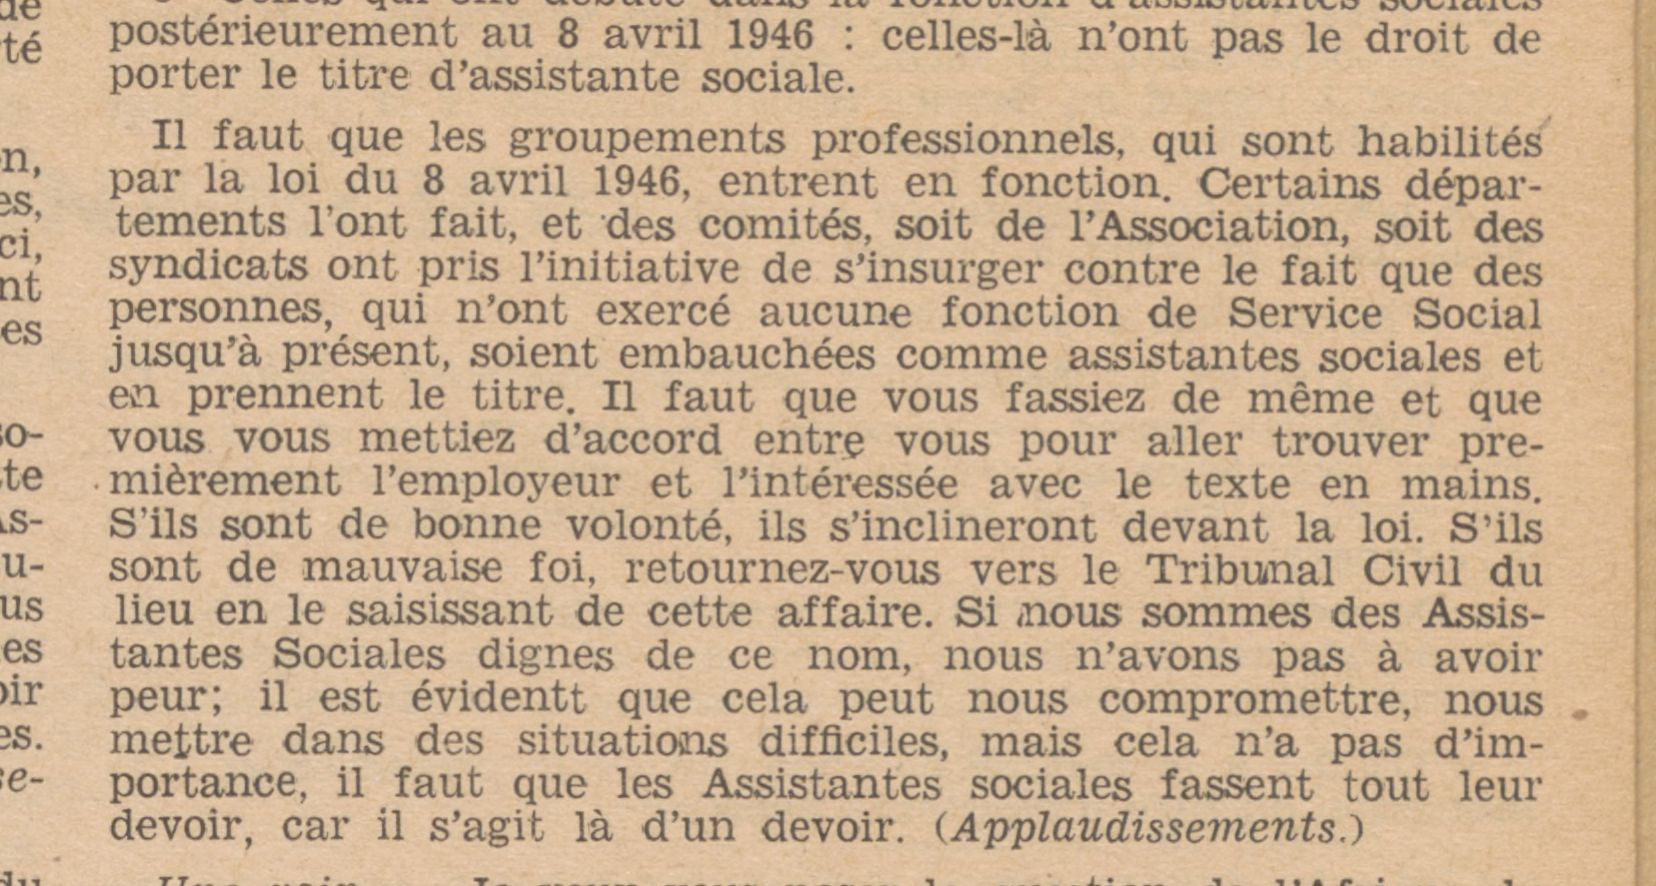 Feuillets de l'Association nationale des assistantes sociales et des assistants sociaux, Association nationale des assistants de service social, Paris, 1947, n° 1947-01, p. 6.